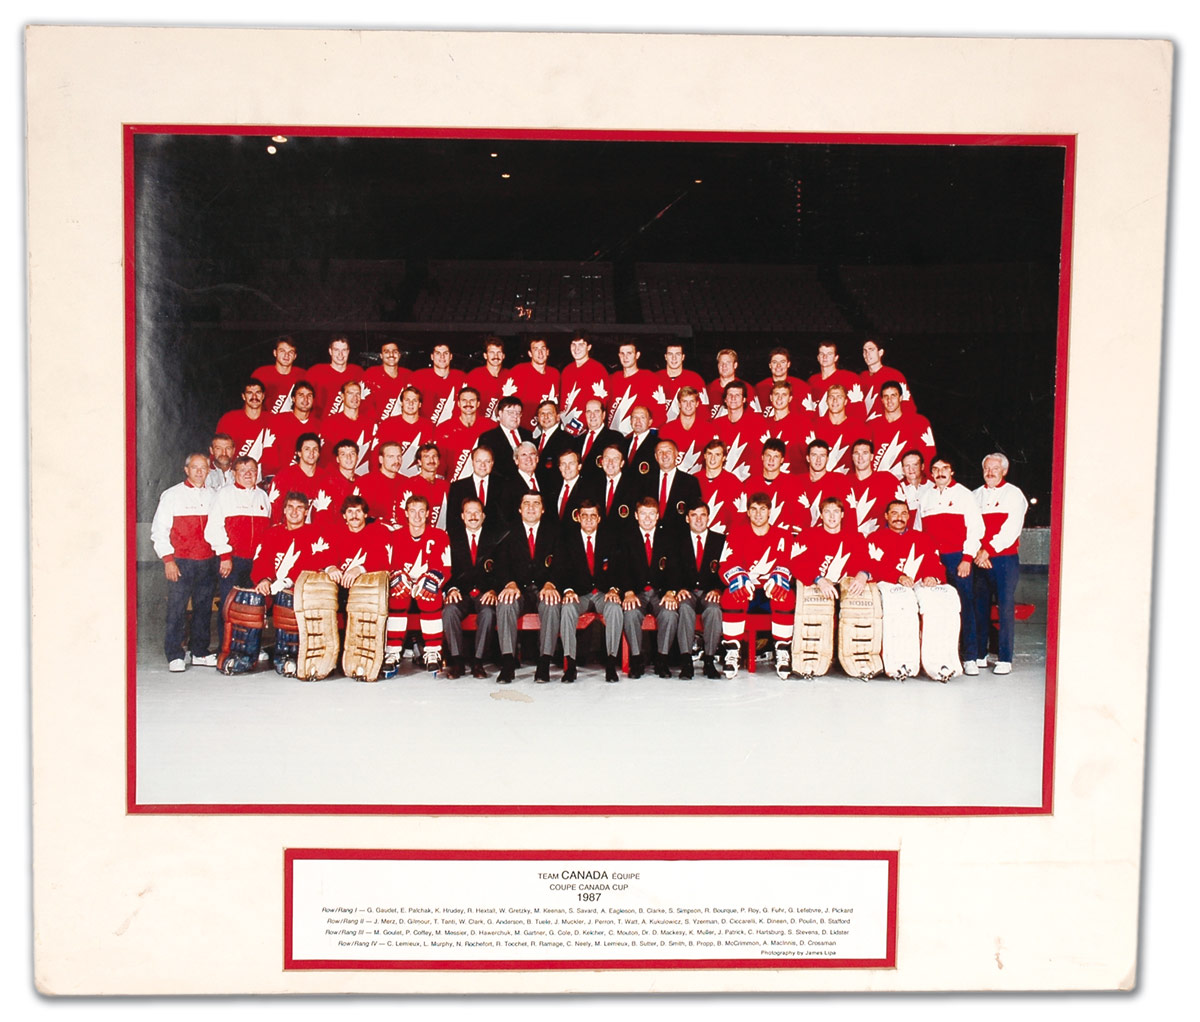 1987 Canada Cup